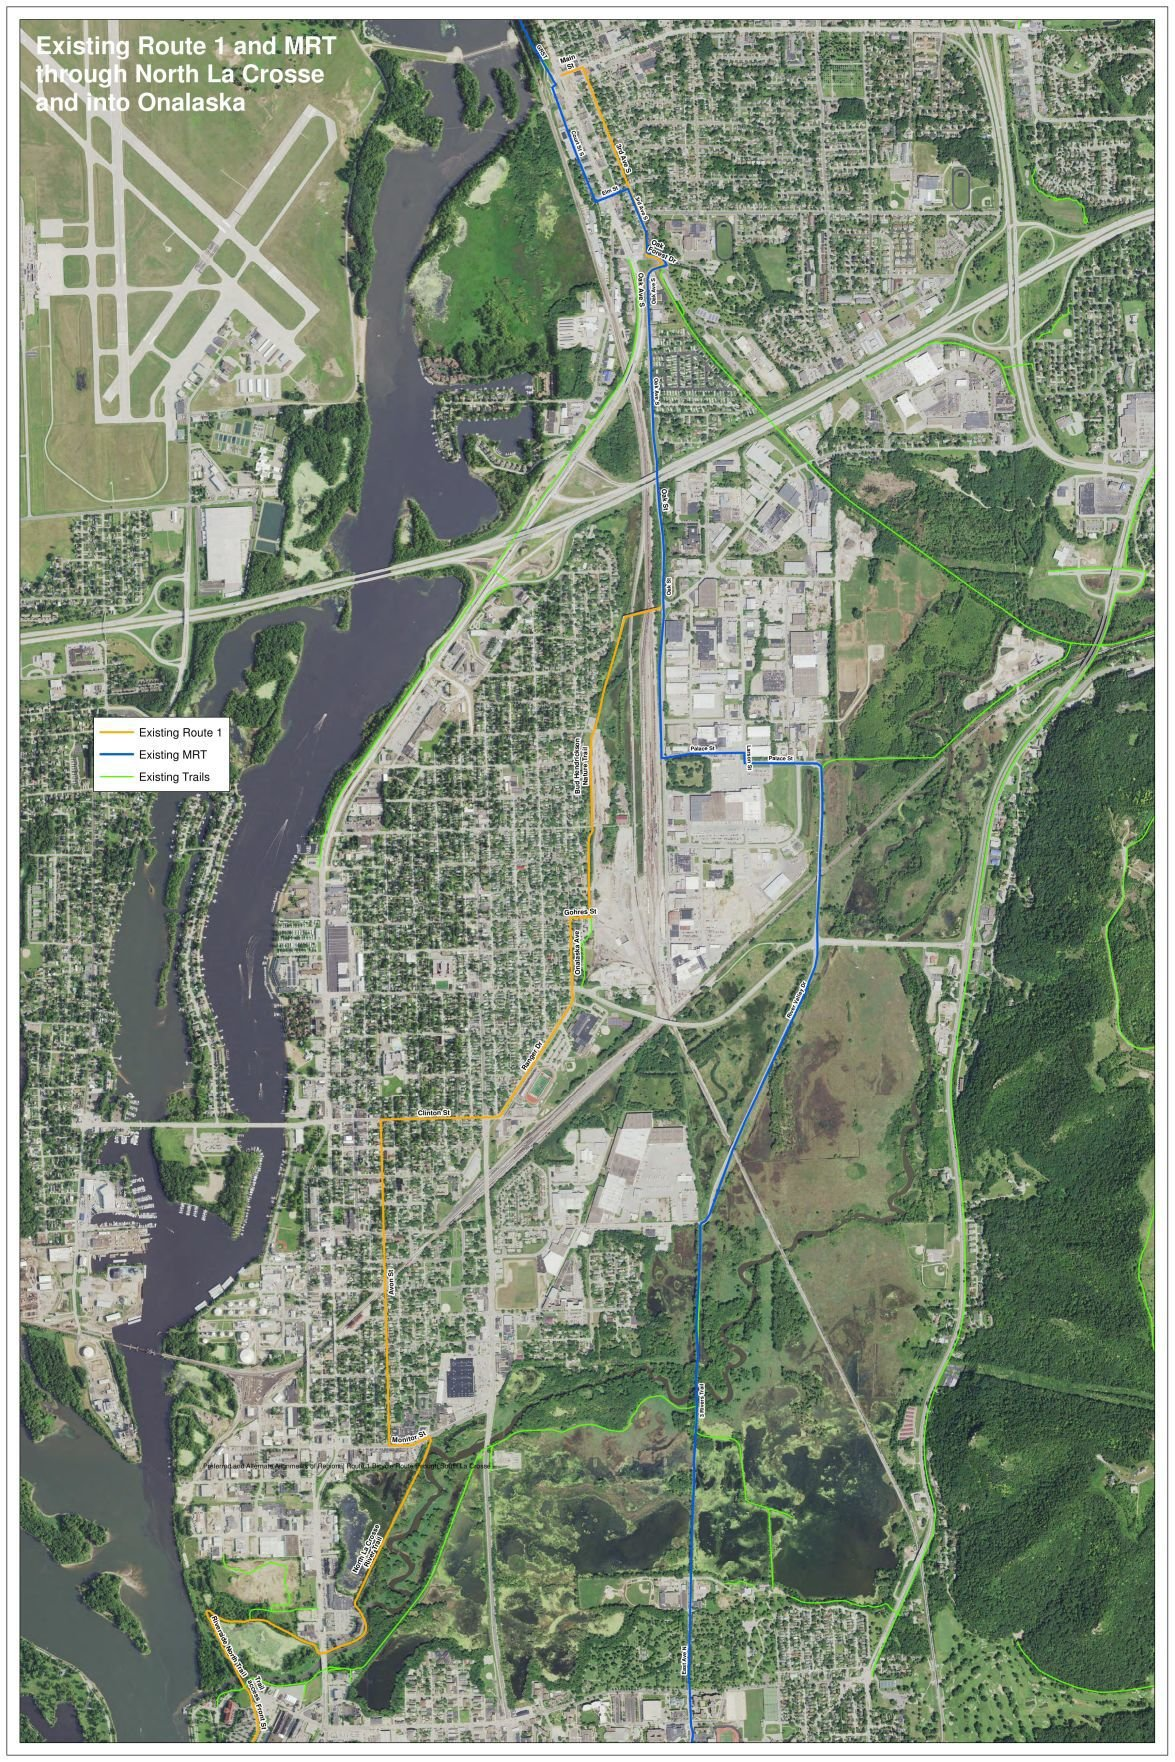 Mississippi River Trail proposed route North